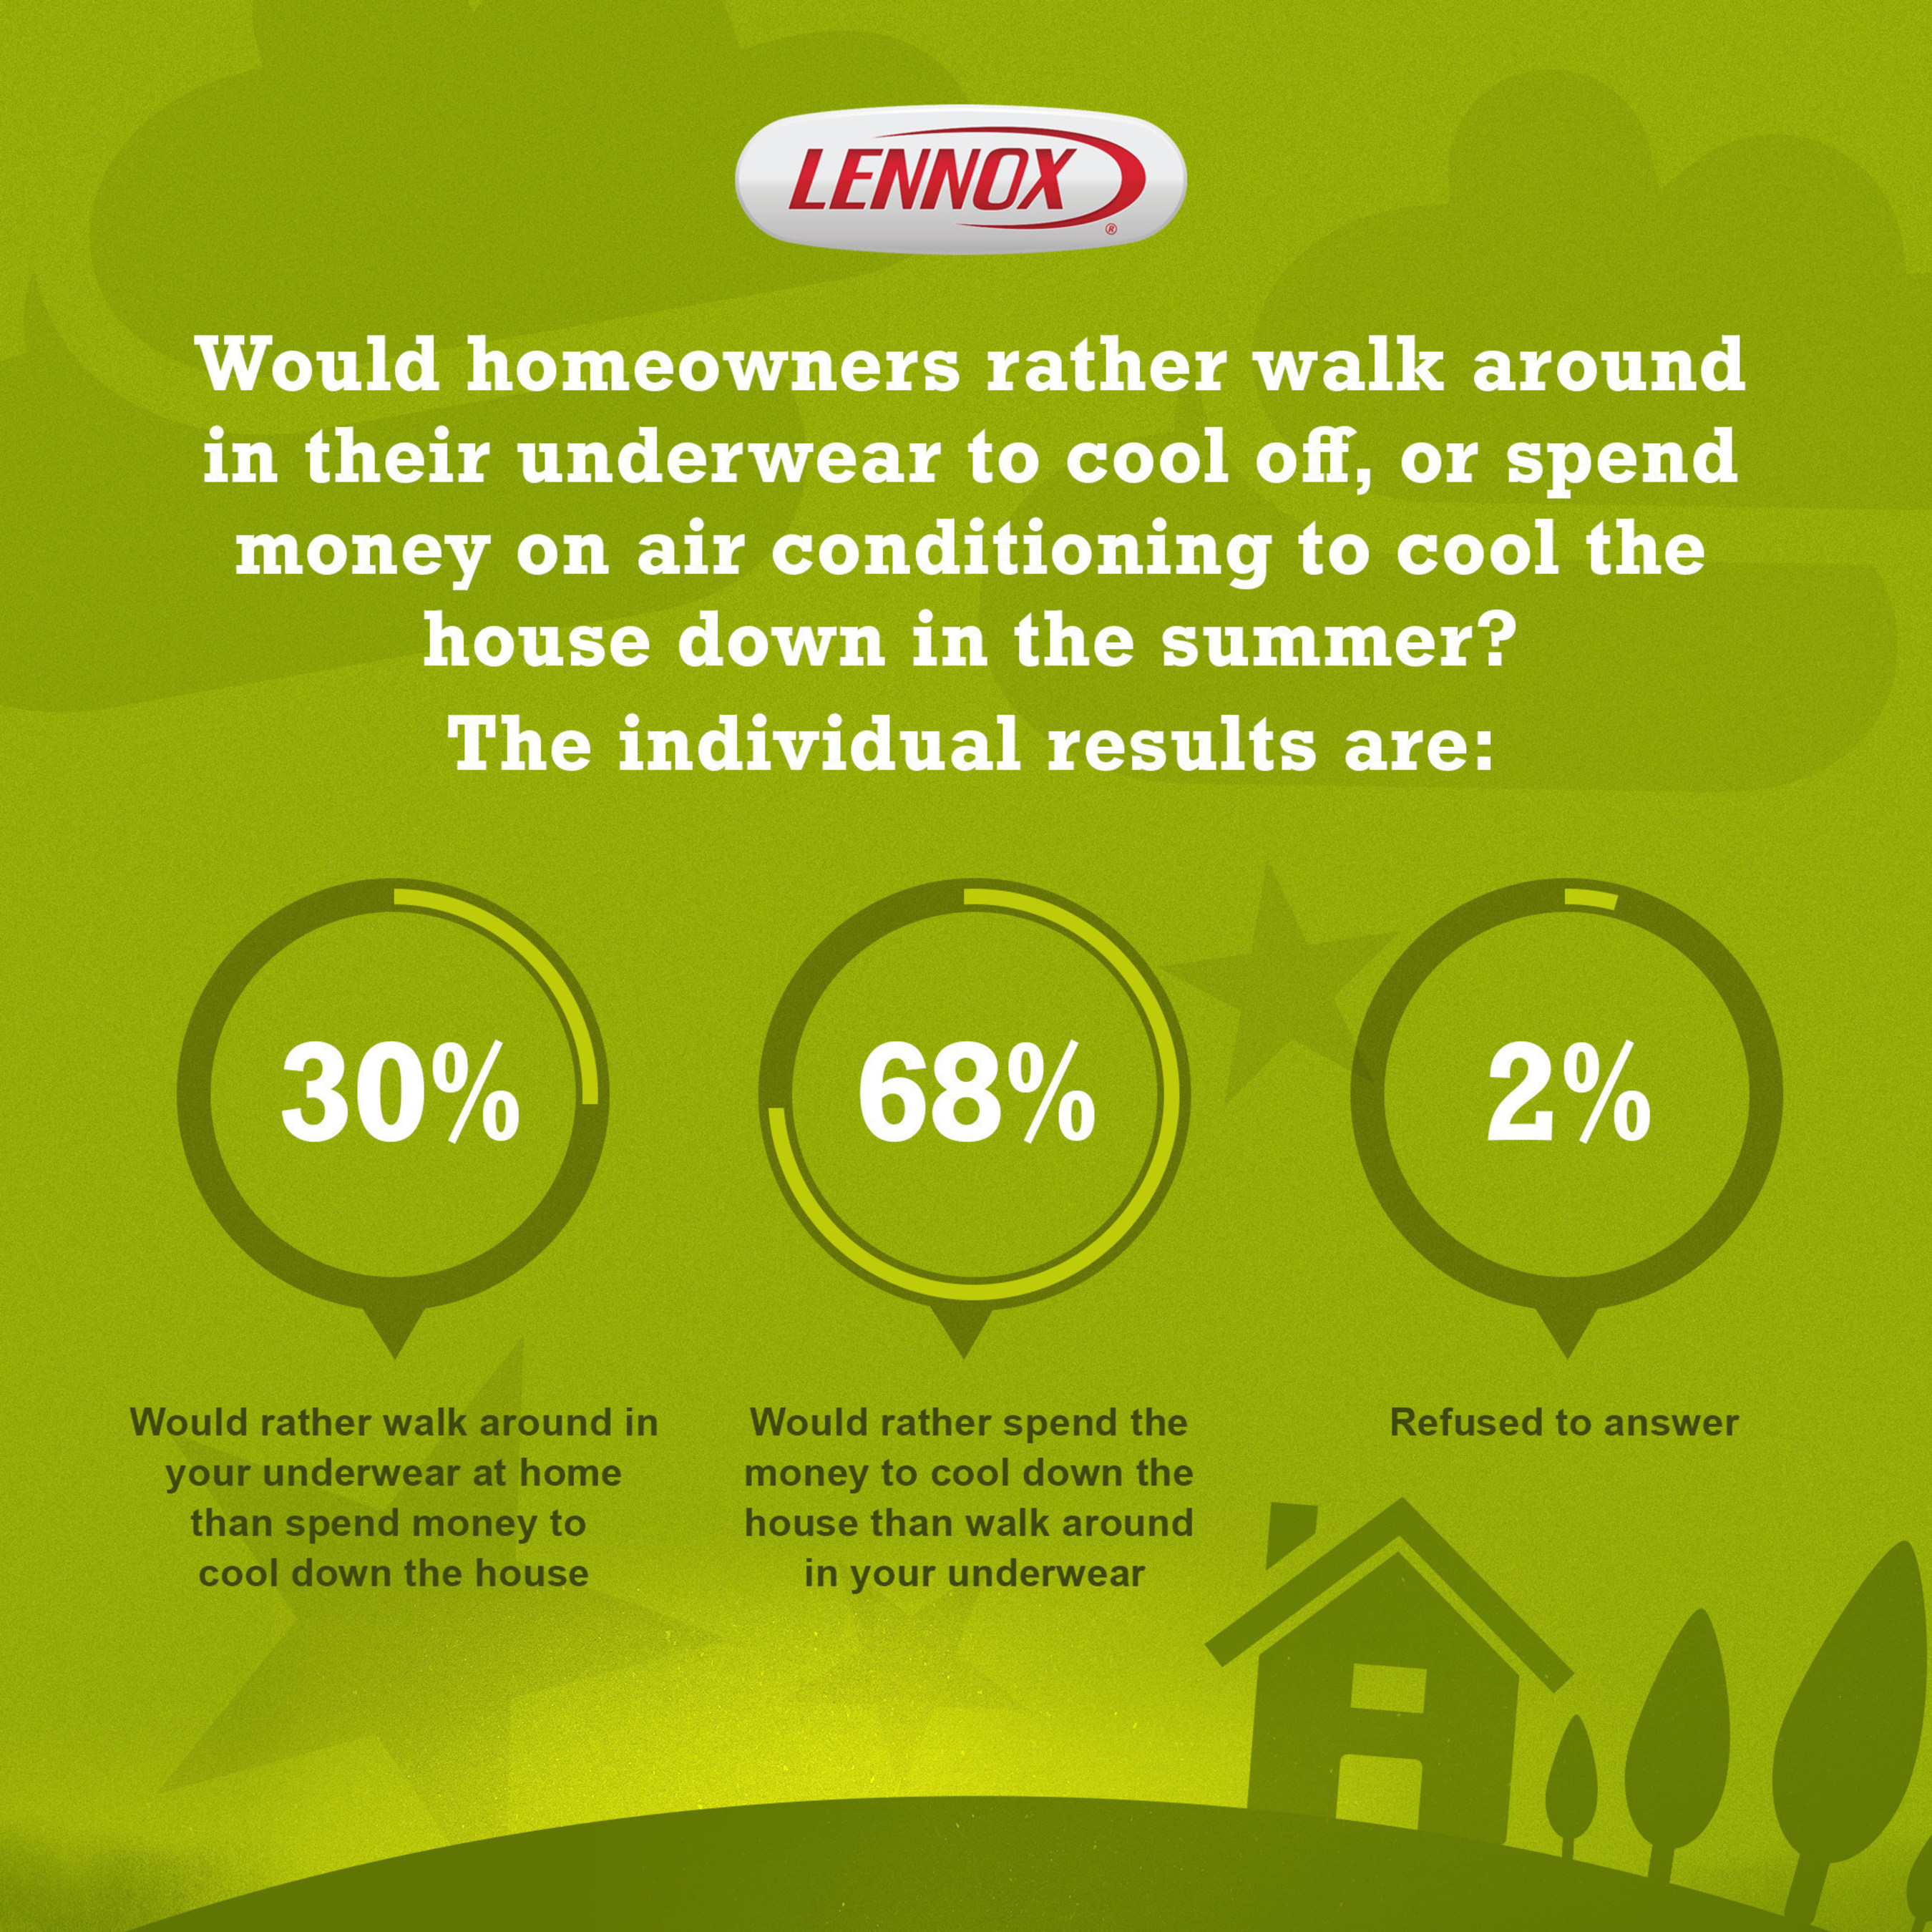 Lennox Home Energy Report Survey Finds Homeowners Give Themselves